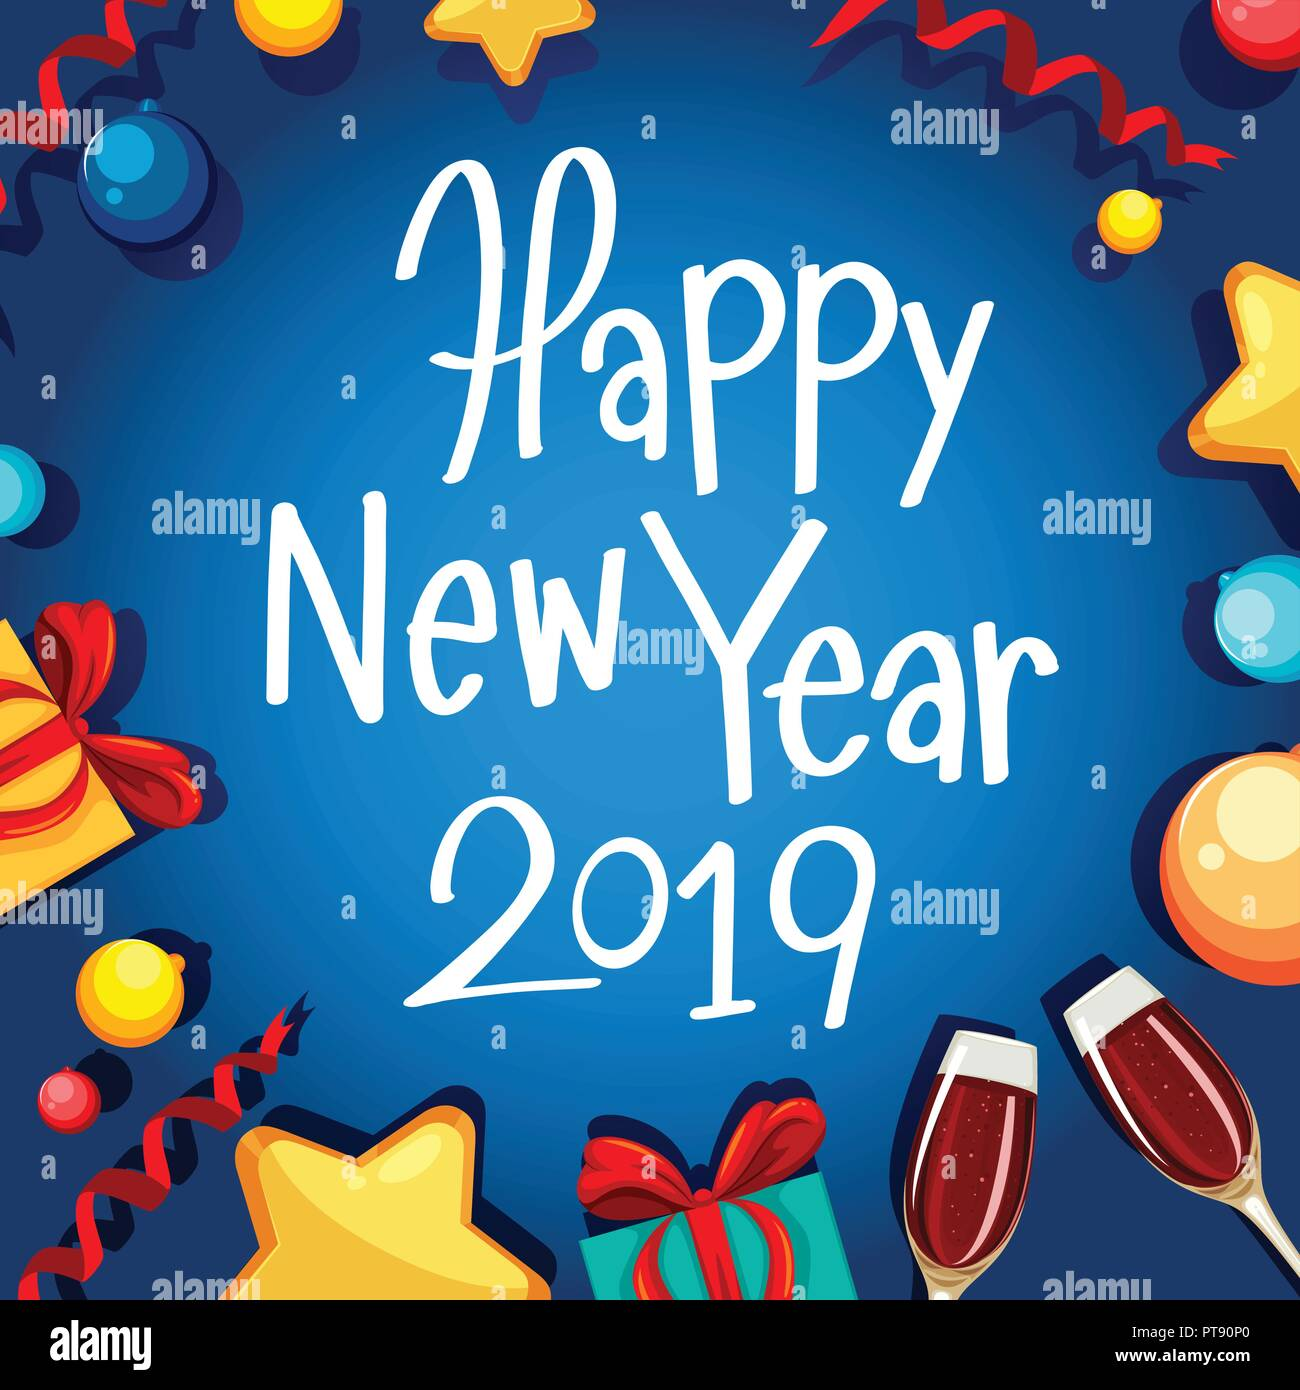 happy new year 2019 card illustration